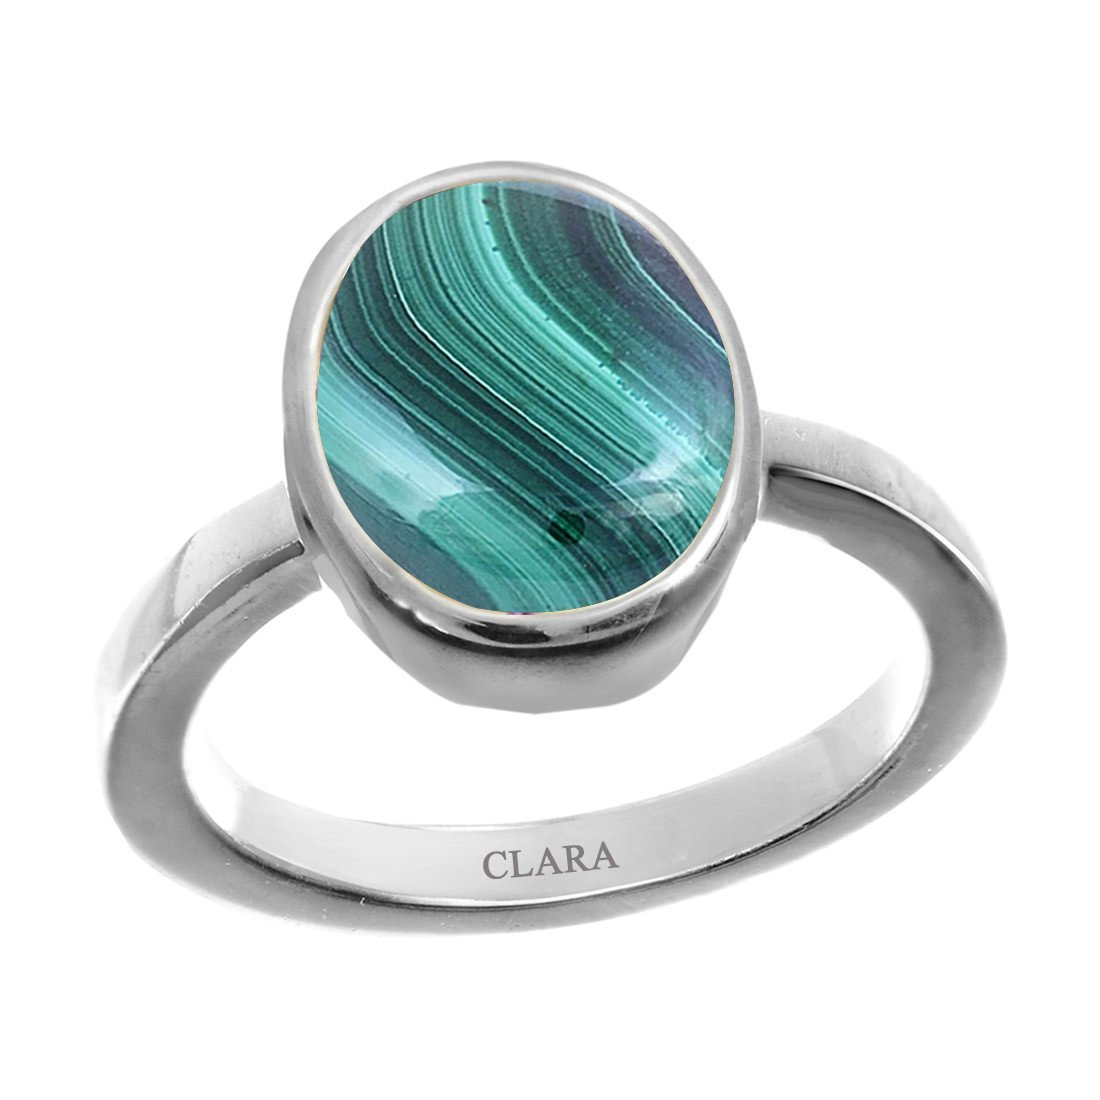 CLARA Certified Malachite 8.3cts or 9.25ratti original stone Sterling Silver Astrological Ring for Men and Women Daana Firang